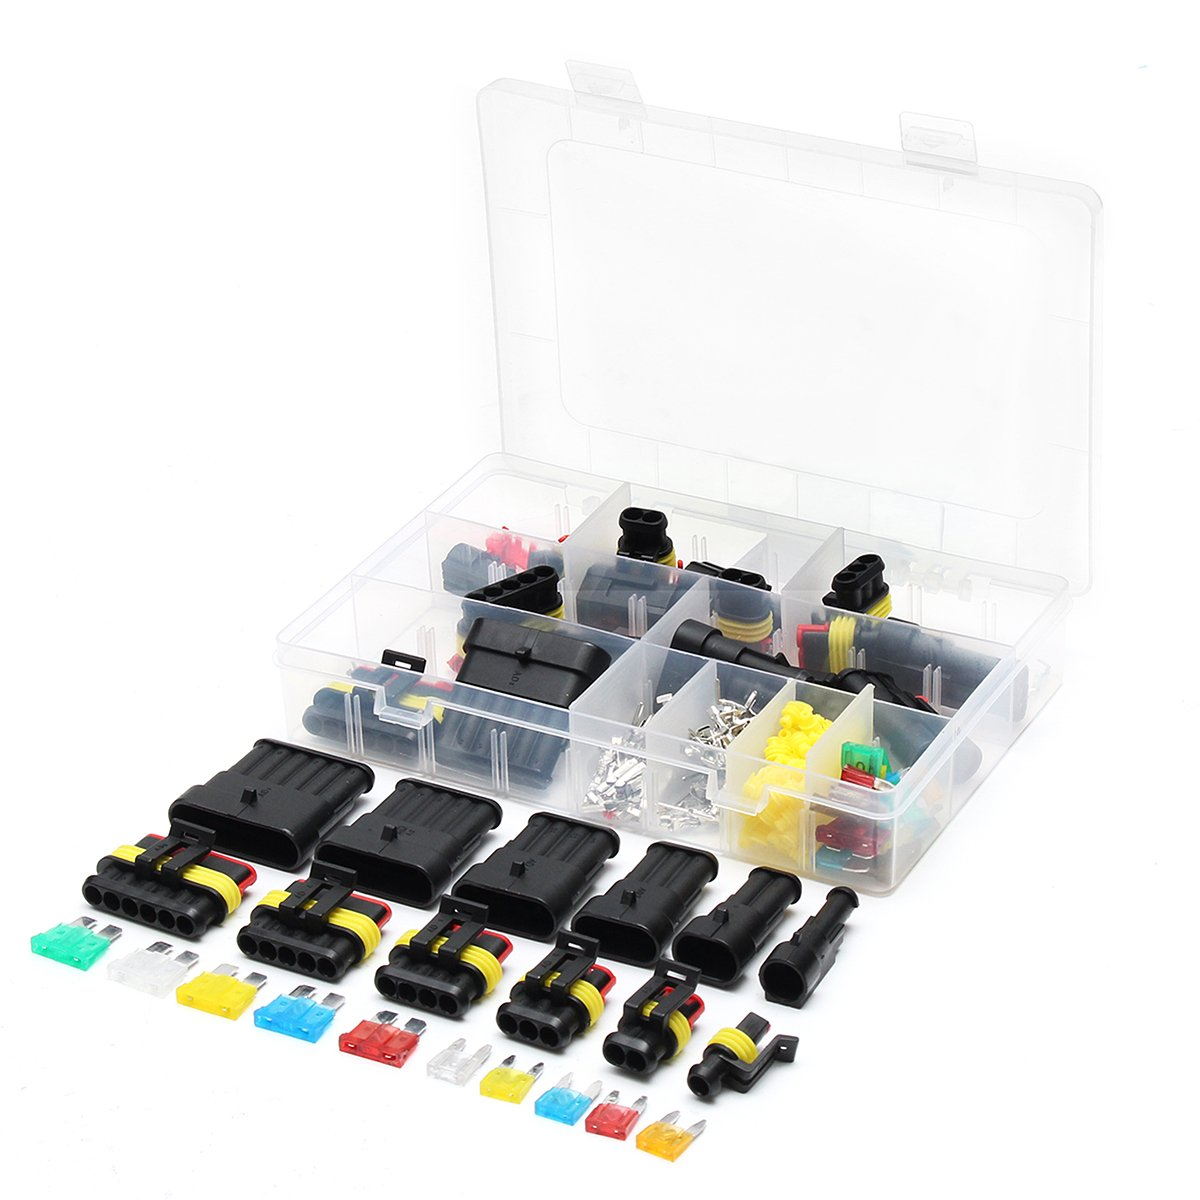 Summer-Home 1 2 3 4 5 6 Pin Car Motorcycle Waterproof Electrical Wire Connector Terminal Assortment Box Kit with Blade Fuses